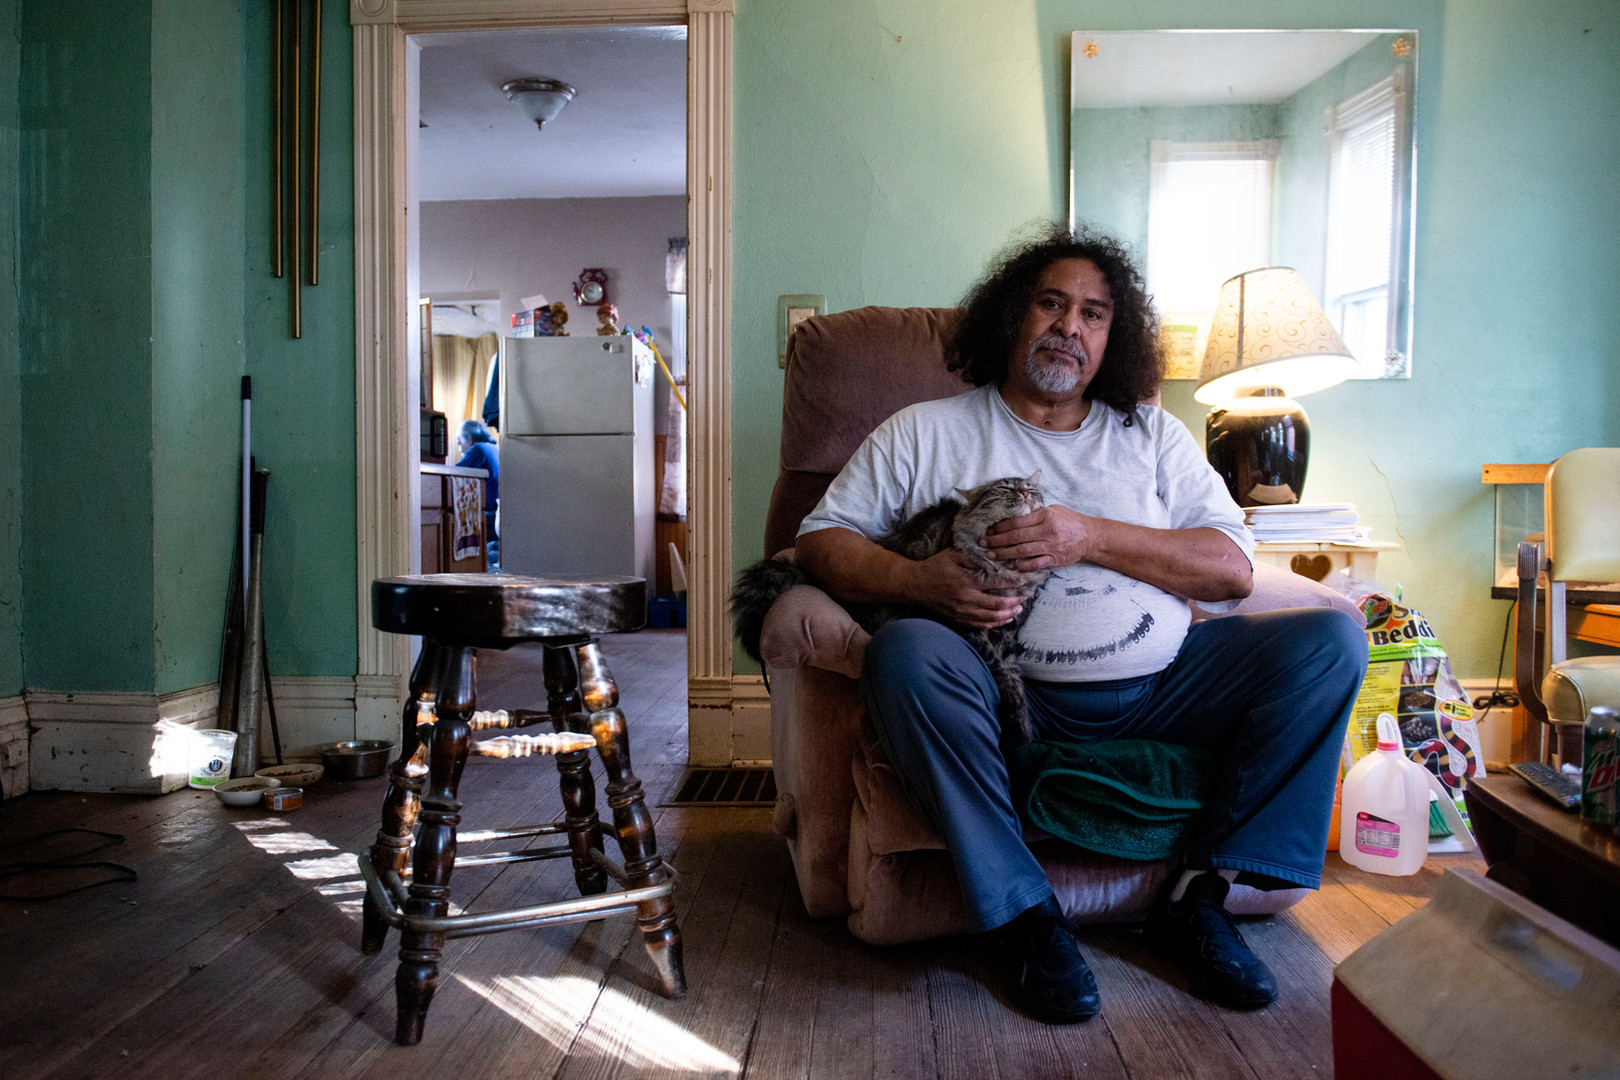 Wesely Pettiford poses for a portrait in his home in St. Paul on Saturday, Oct. 26, 2019. Pettiford, who is being evicted from the home, requires dialysis treatment three times a week and faces a speech disability. The case highlights a decades-old policy where homes such as Pettiford's are targeted and put on an accelerated foreclosure schedule.